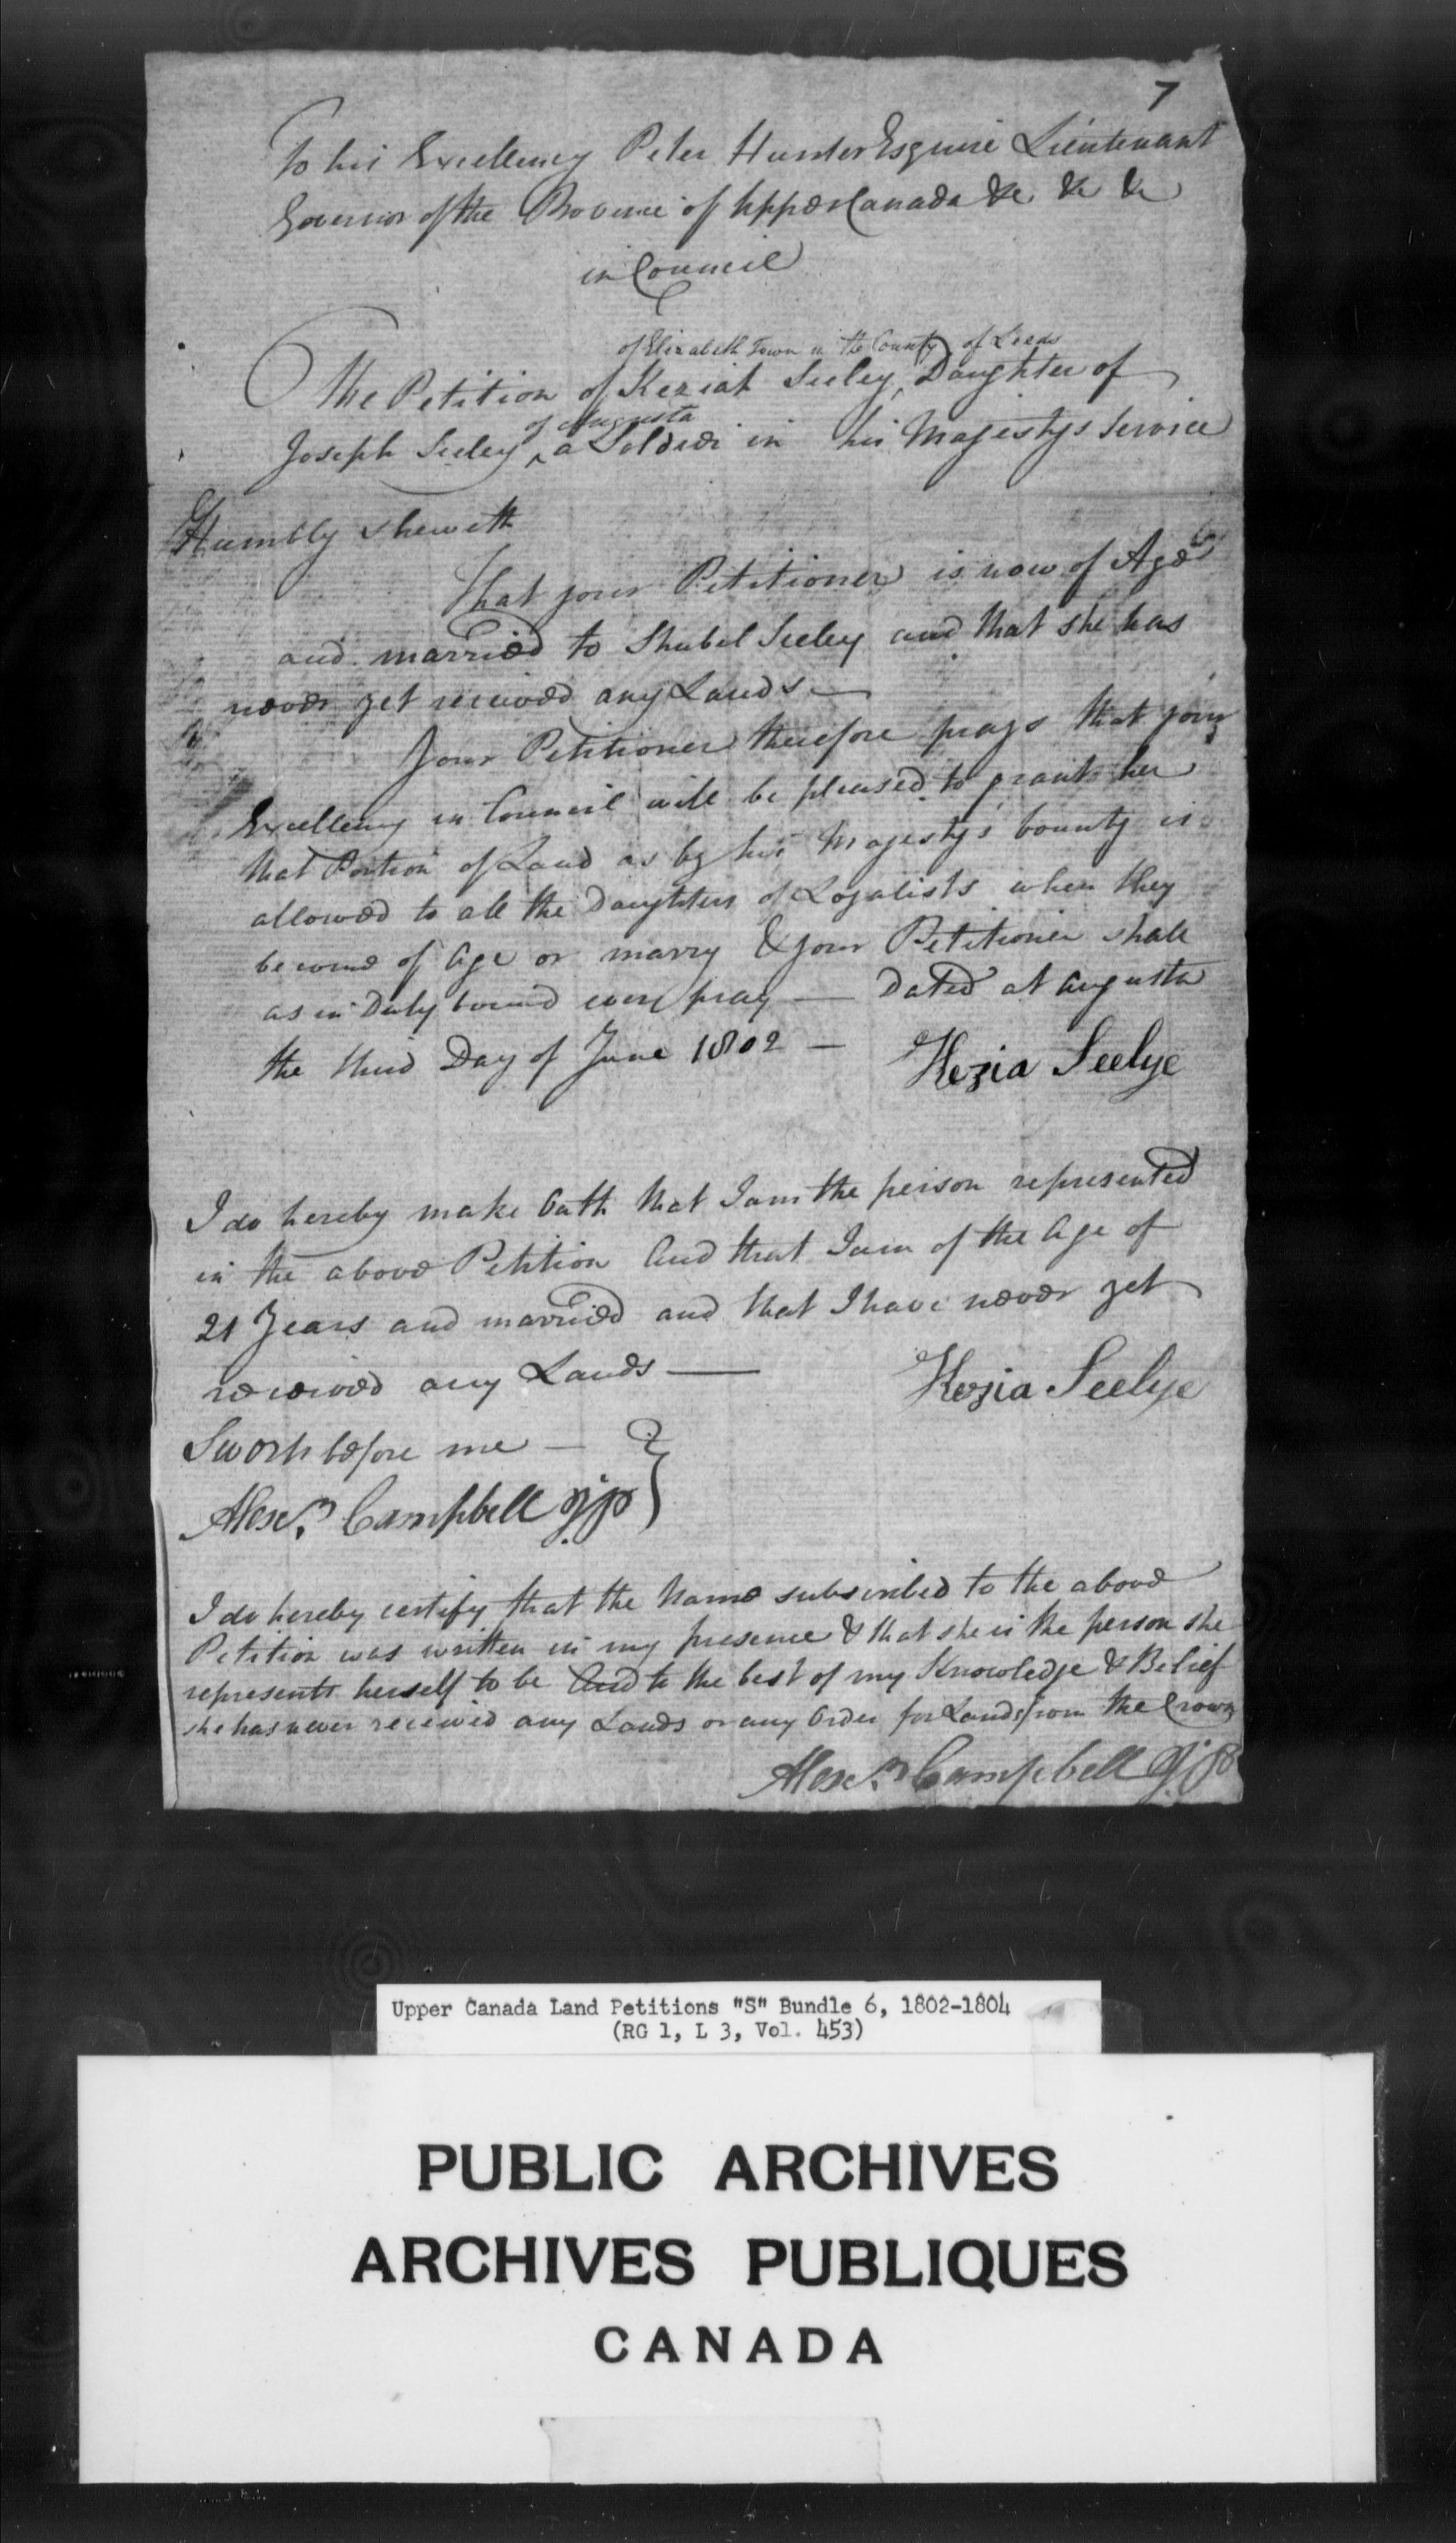 Title: Upper Canada Land Petitions (1763-1865) - Mikan Number: 205131 - Microform: c-2808